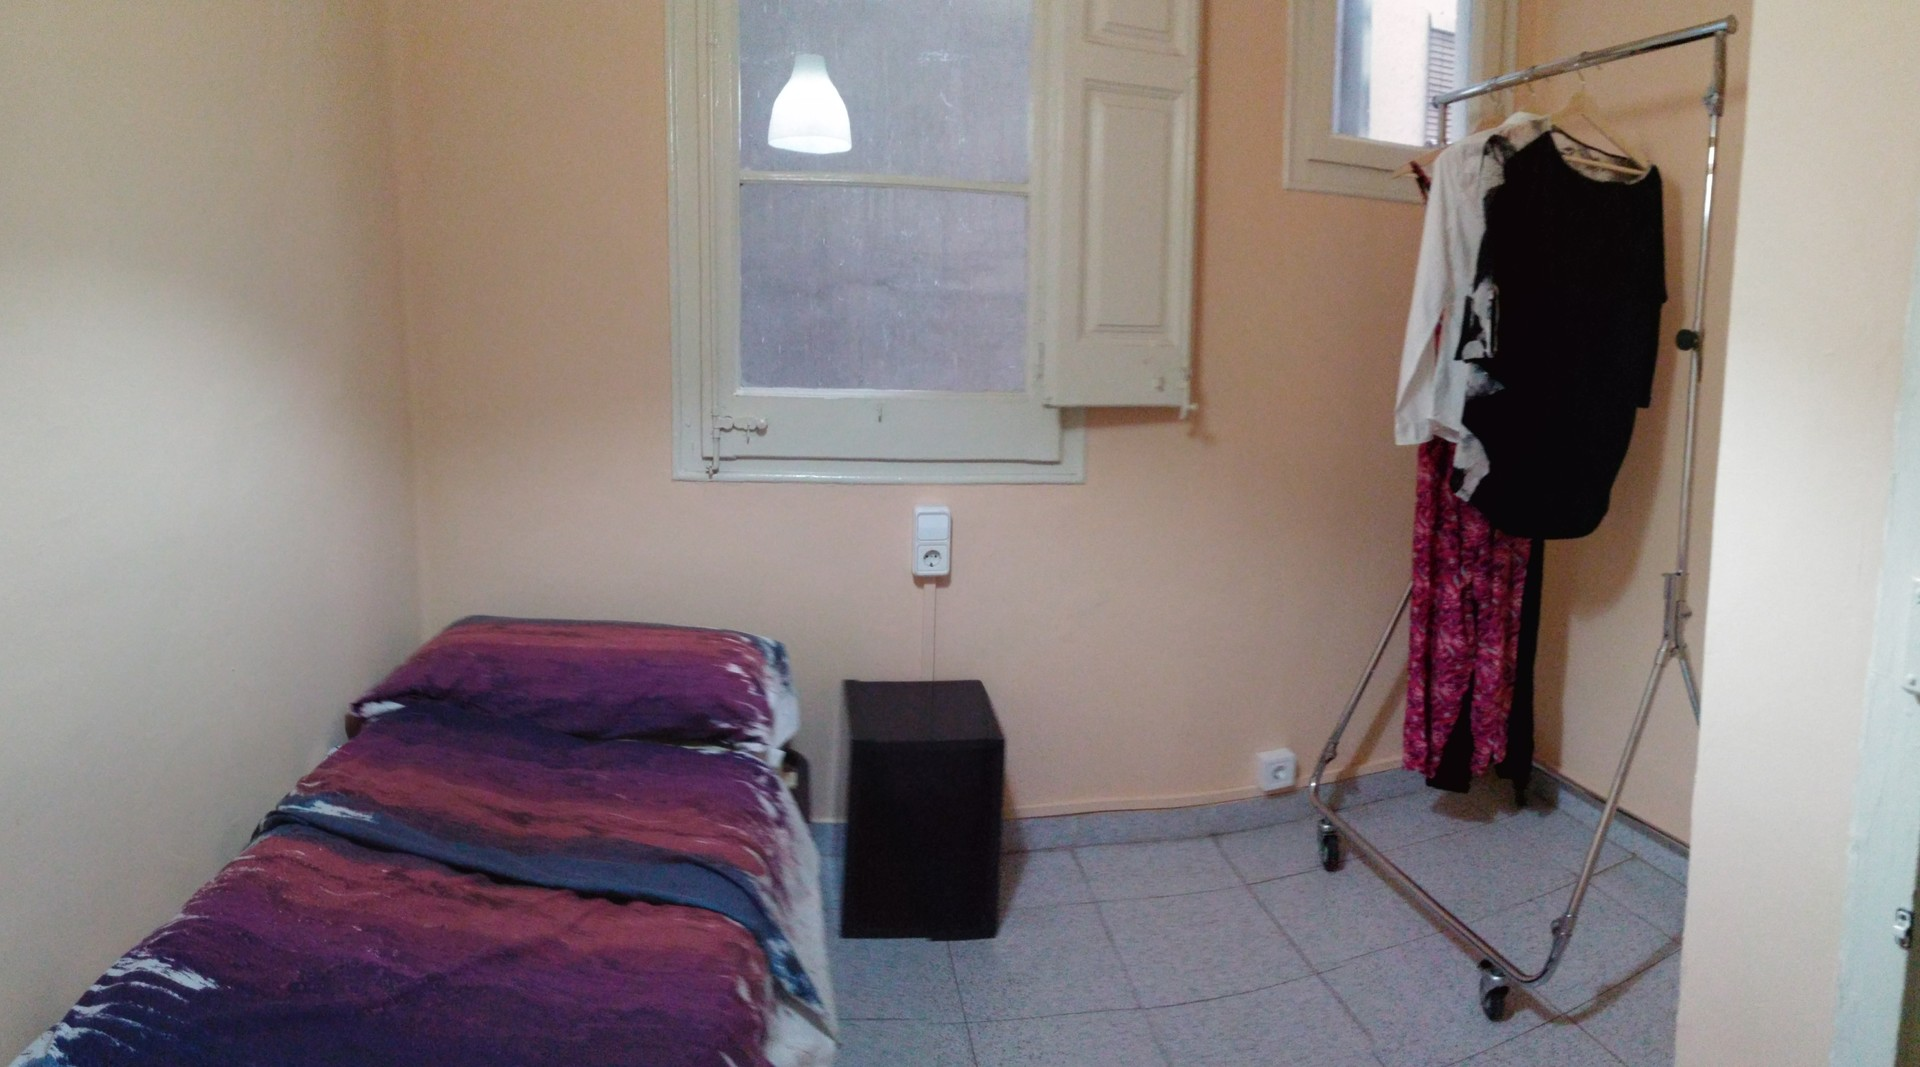 Individual Room In Poble Sec 350 Room For Rent Barcelona # Muebles Poble Sec